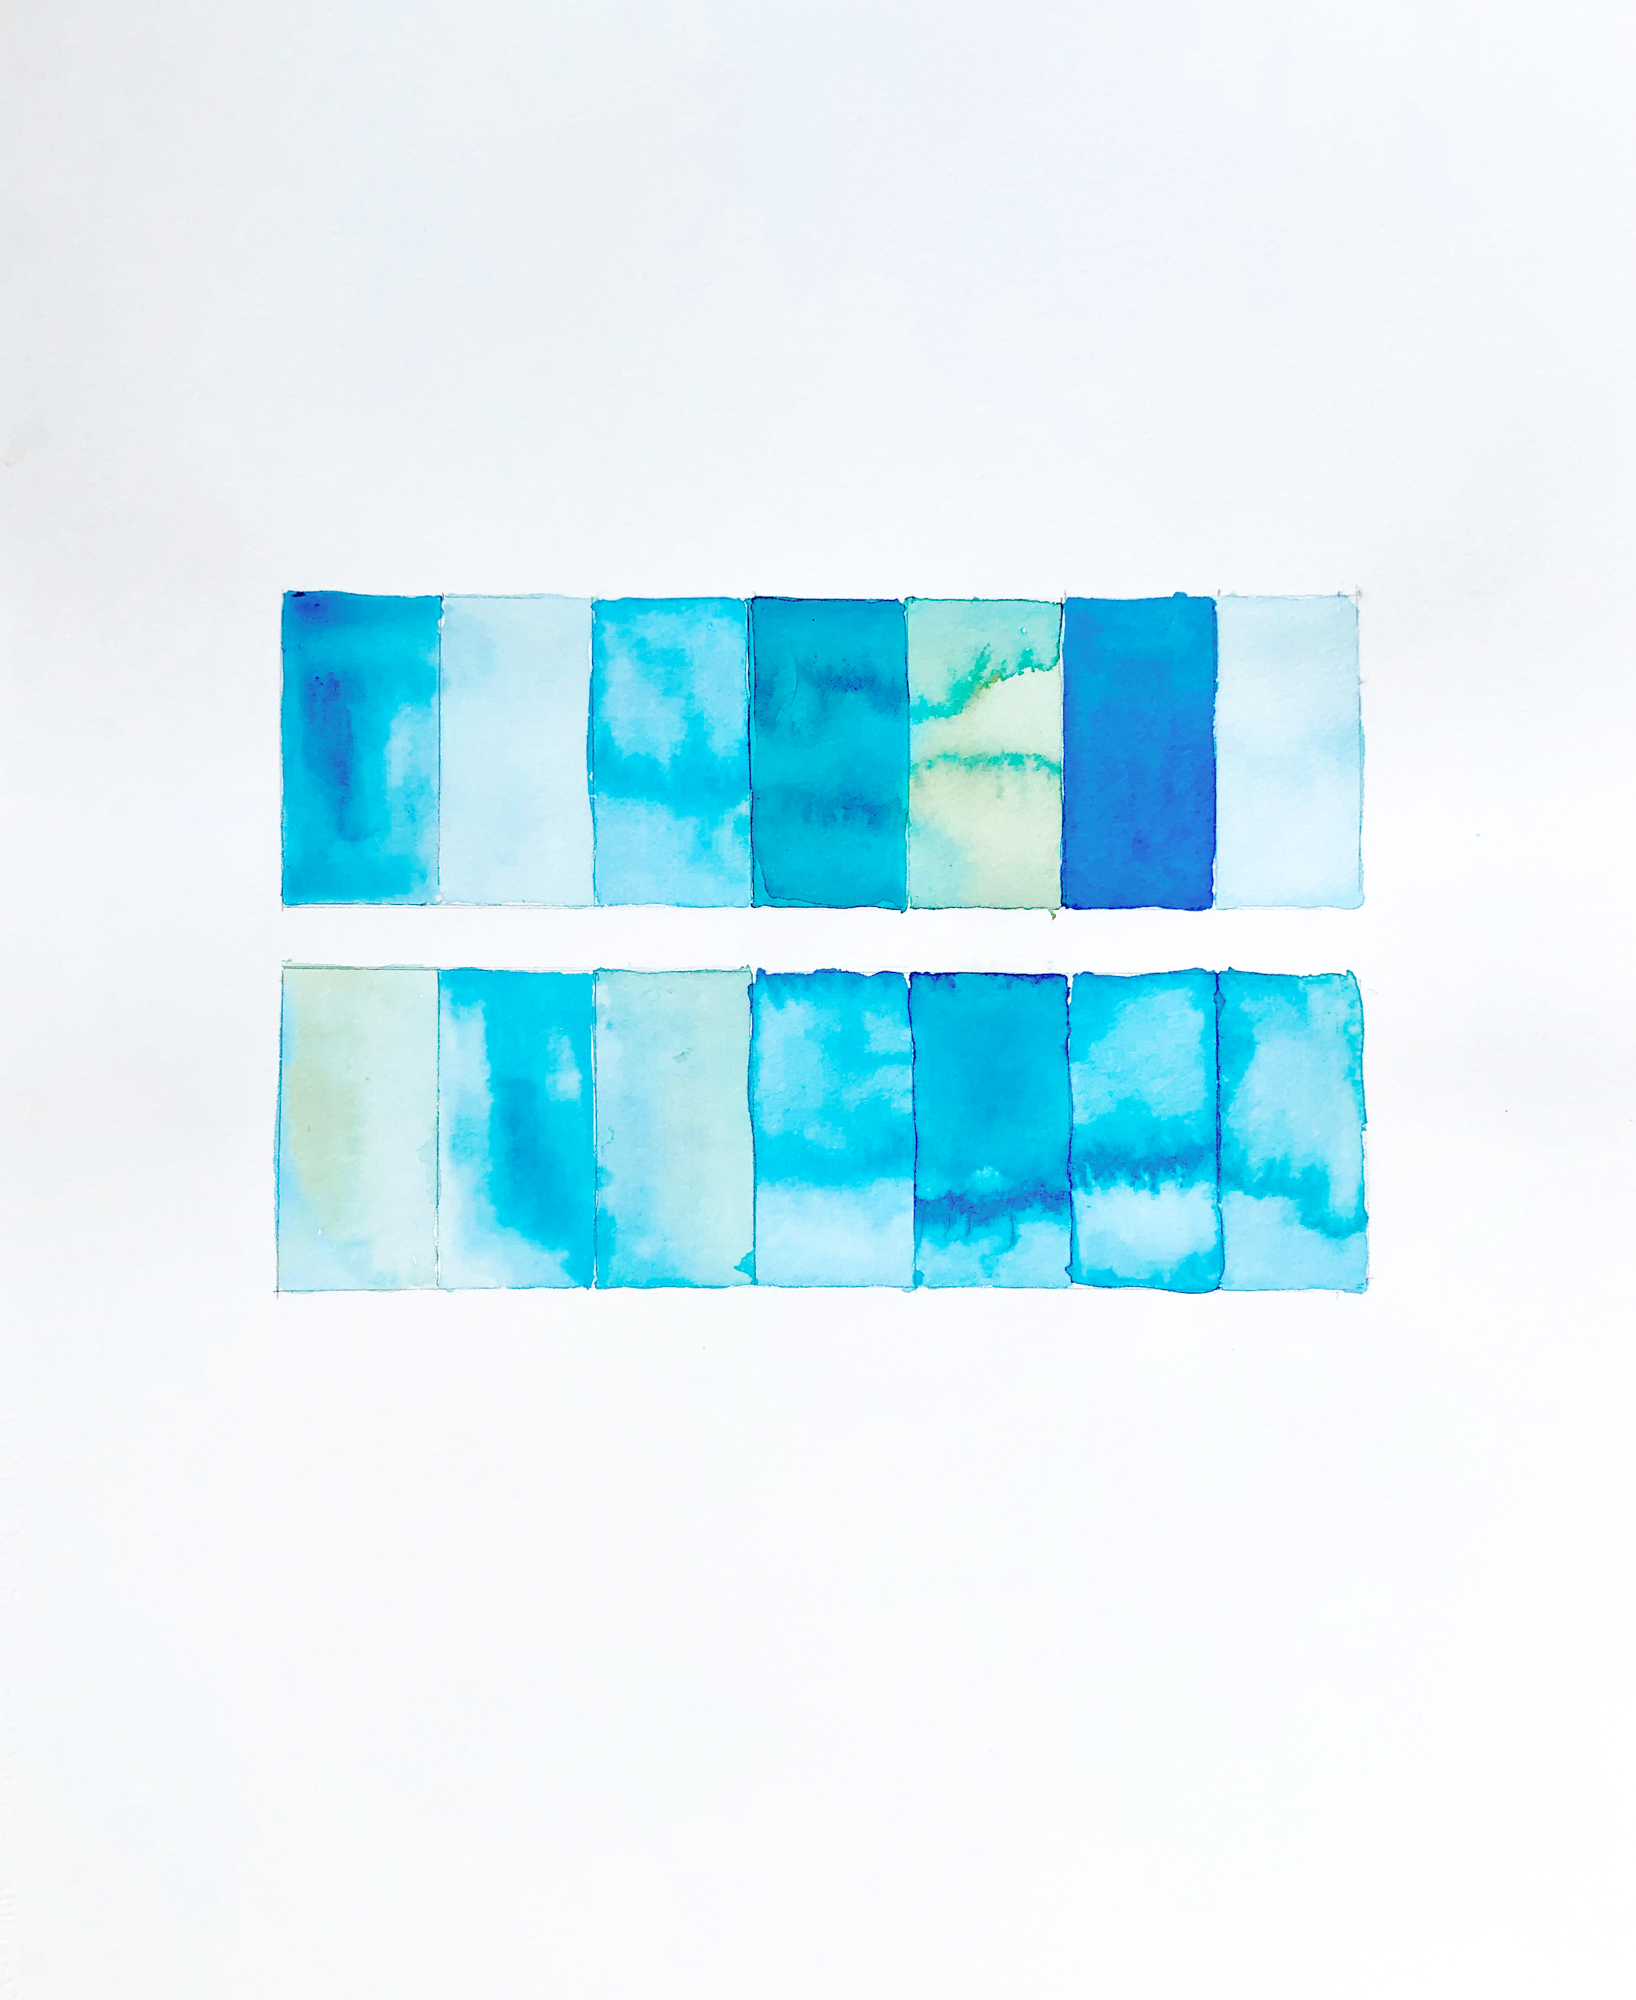 Shades of Blue by Bastienne Schmidt, 2019, mixed media on paper, 16 x 20 in, $3000